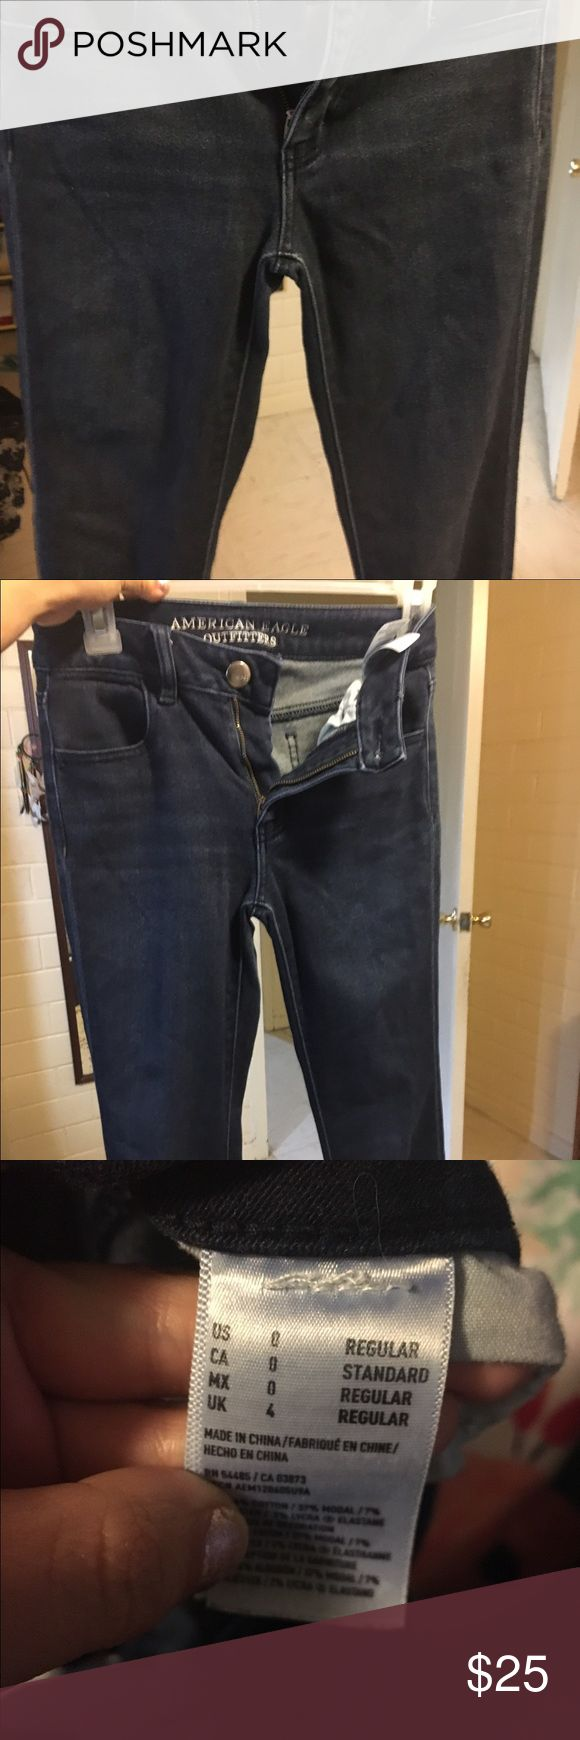 American Eagle woman jeggings Used in good conditions, size 0R American Eagle Outfitters Jeans Skinny